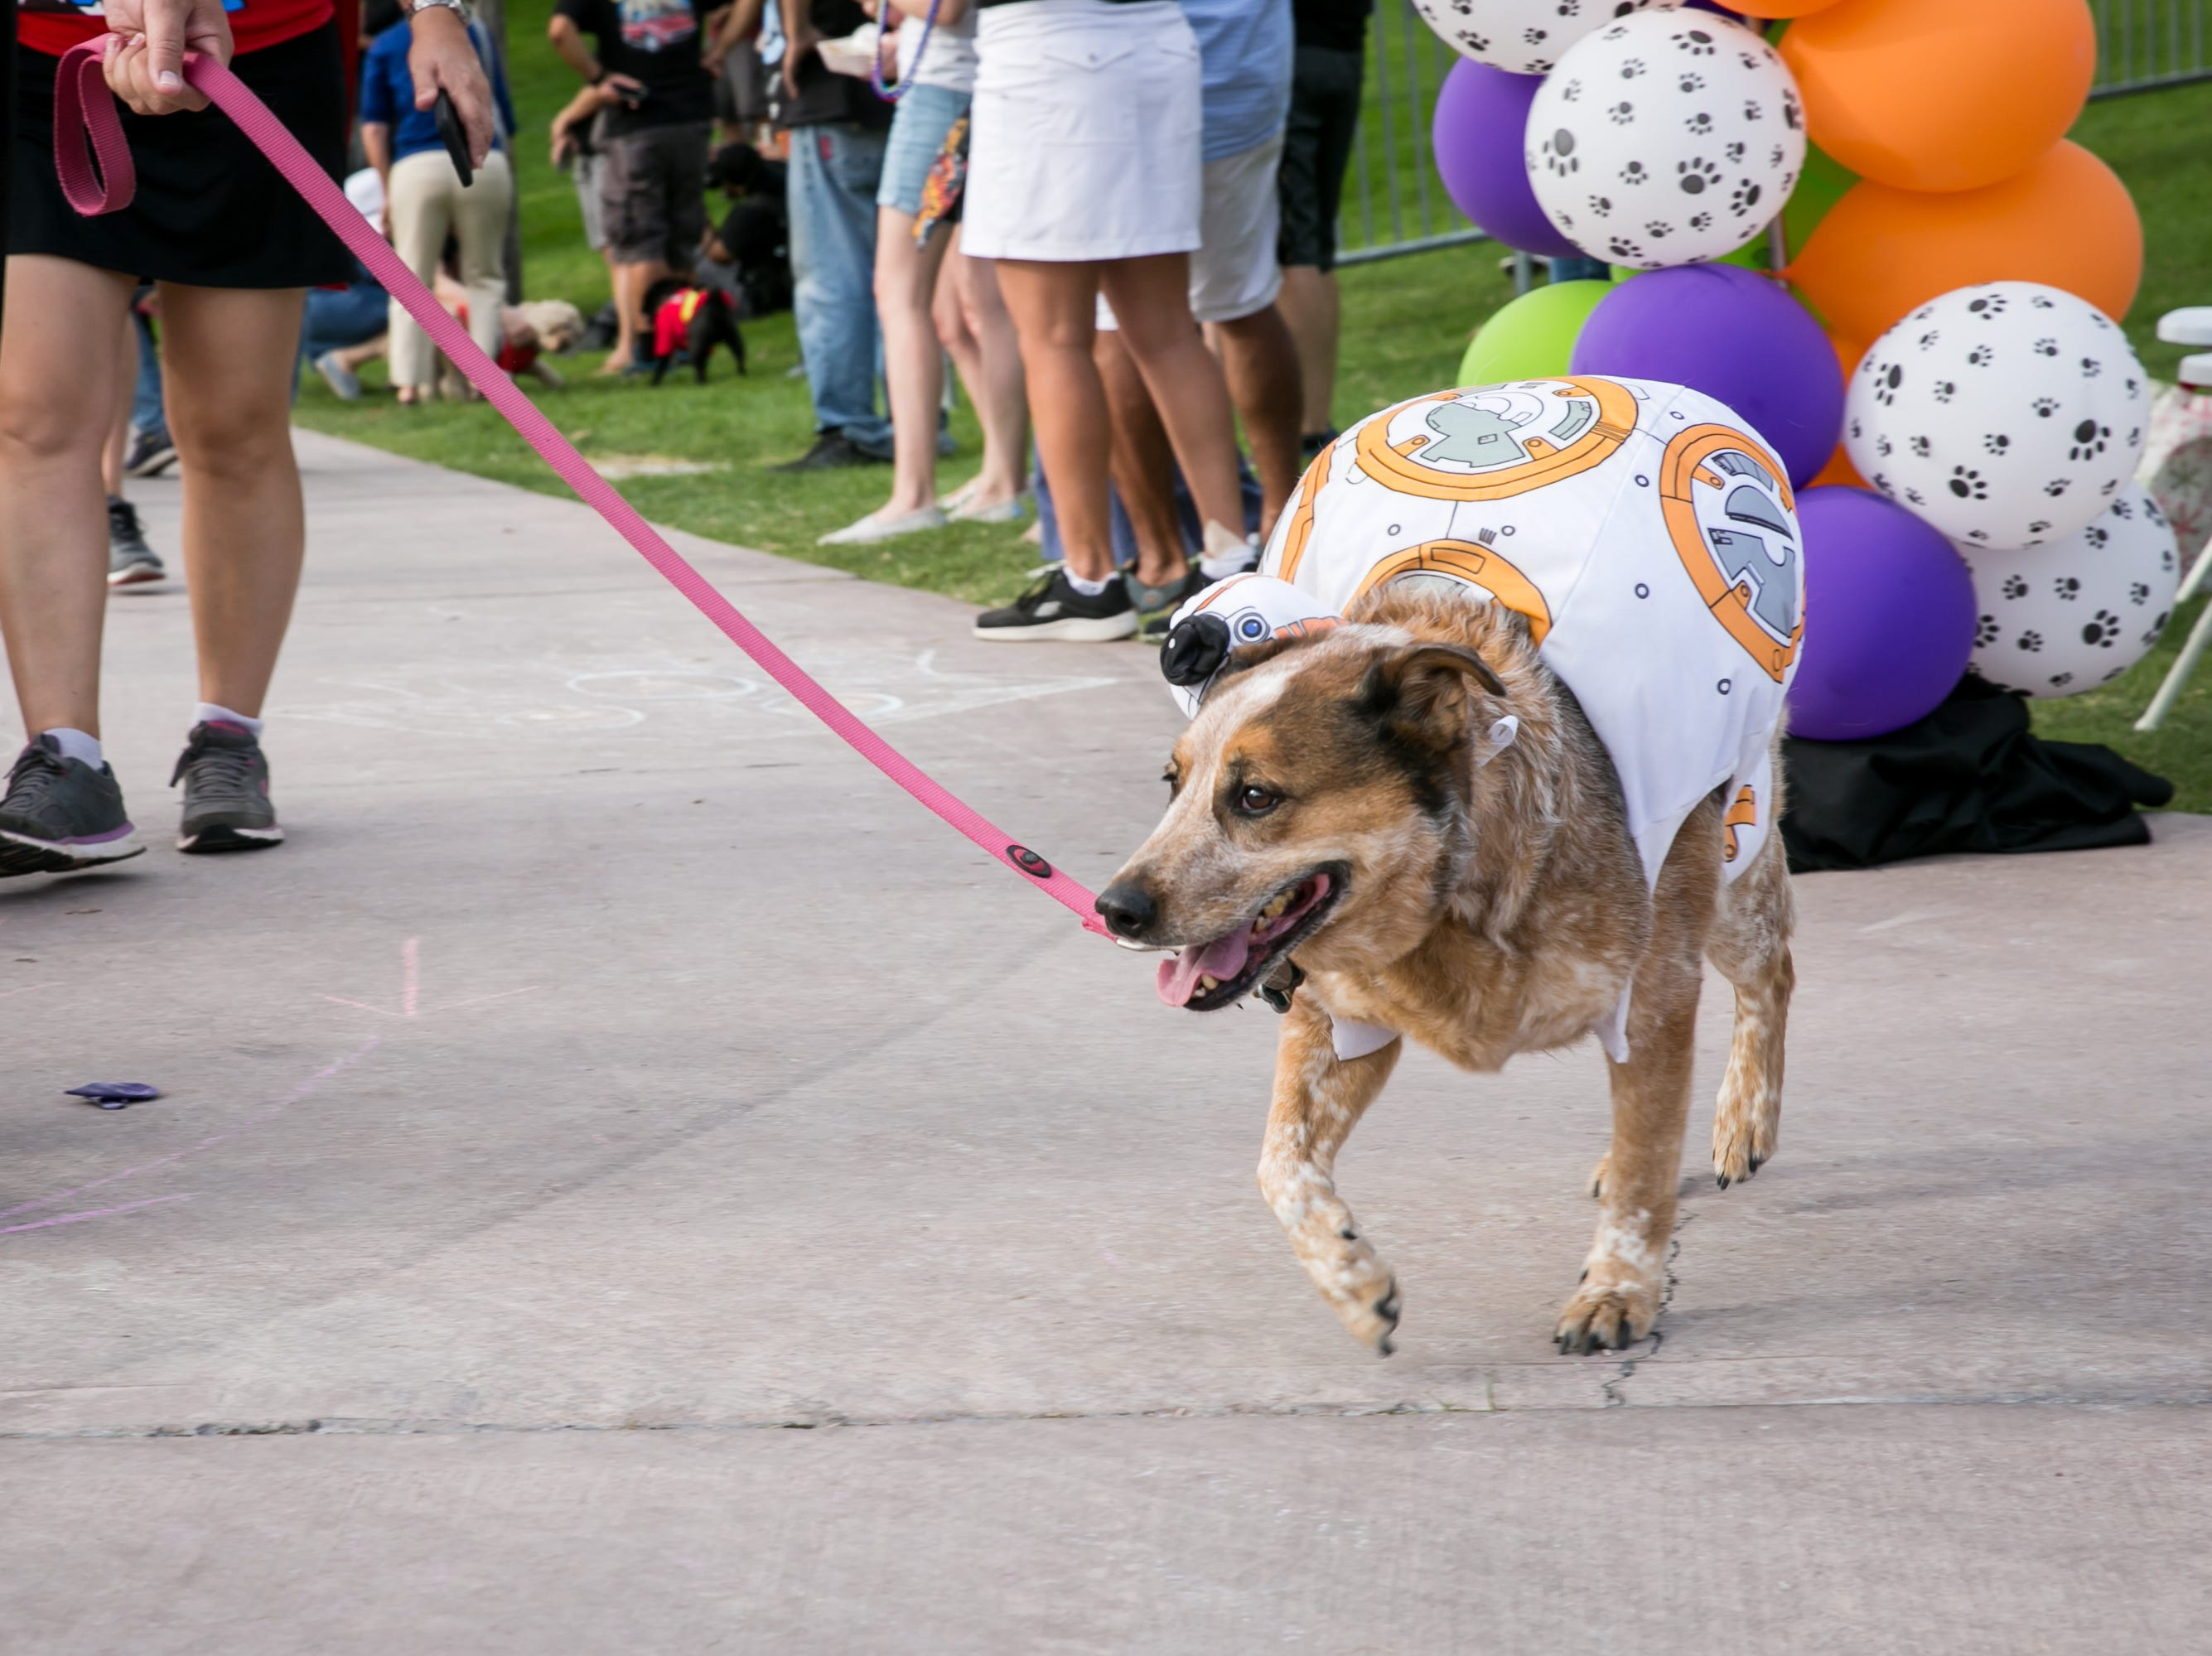 BB-8 dog looked precious during Howl-o-Ween at Hance Park on Sunday, October 28, 2018.